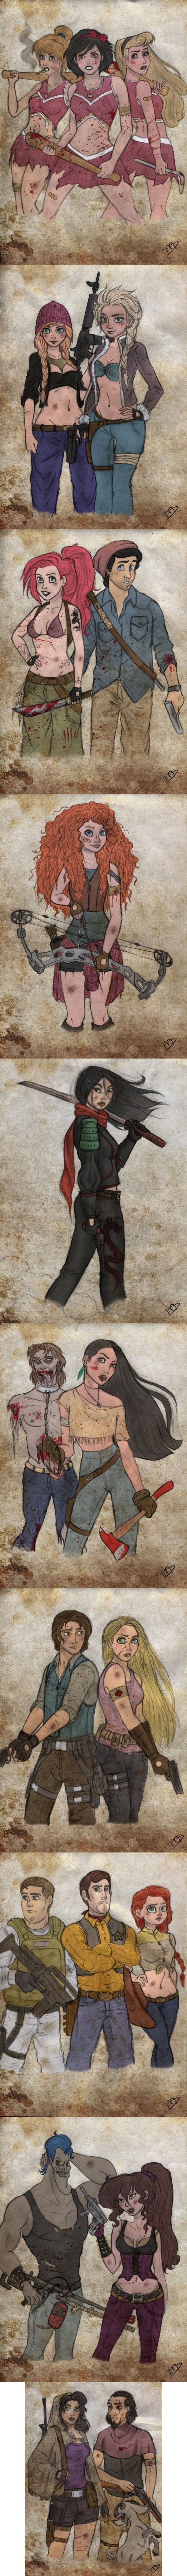 If Disney characters were in the zombie apocalypse